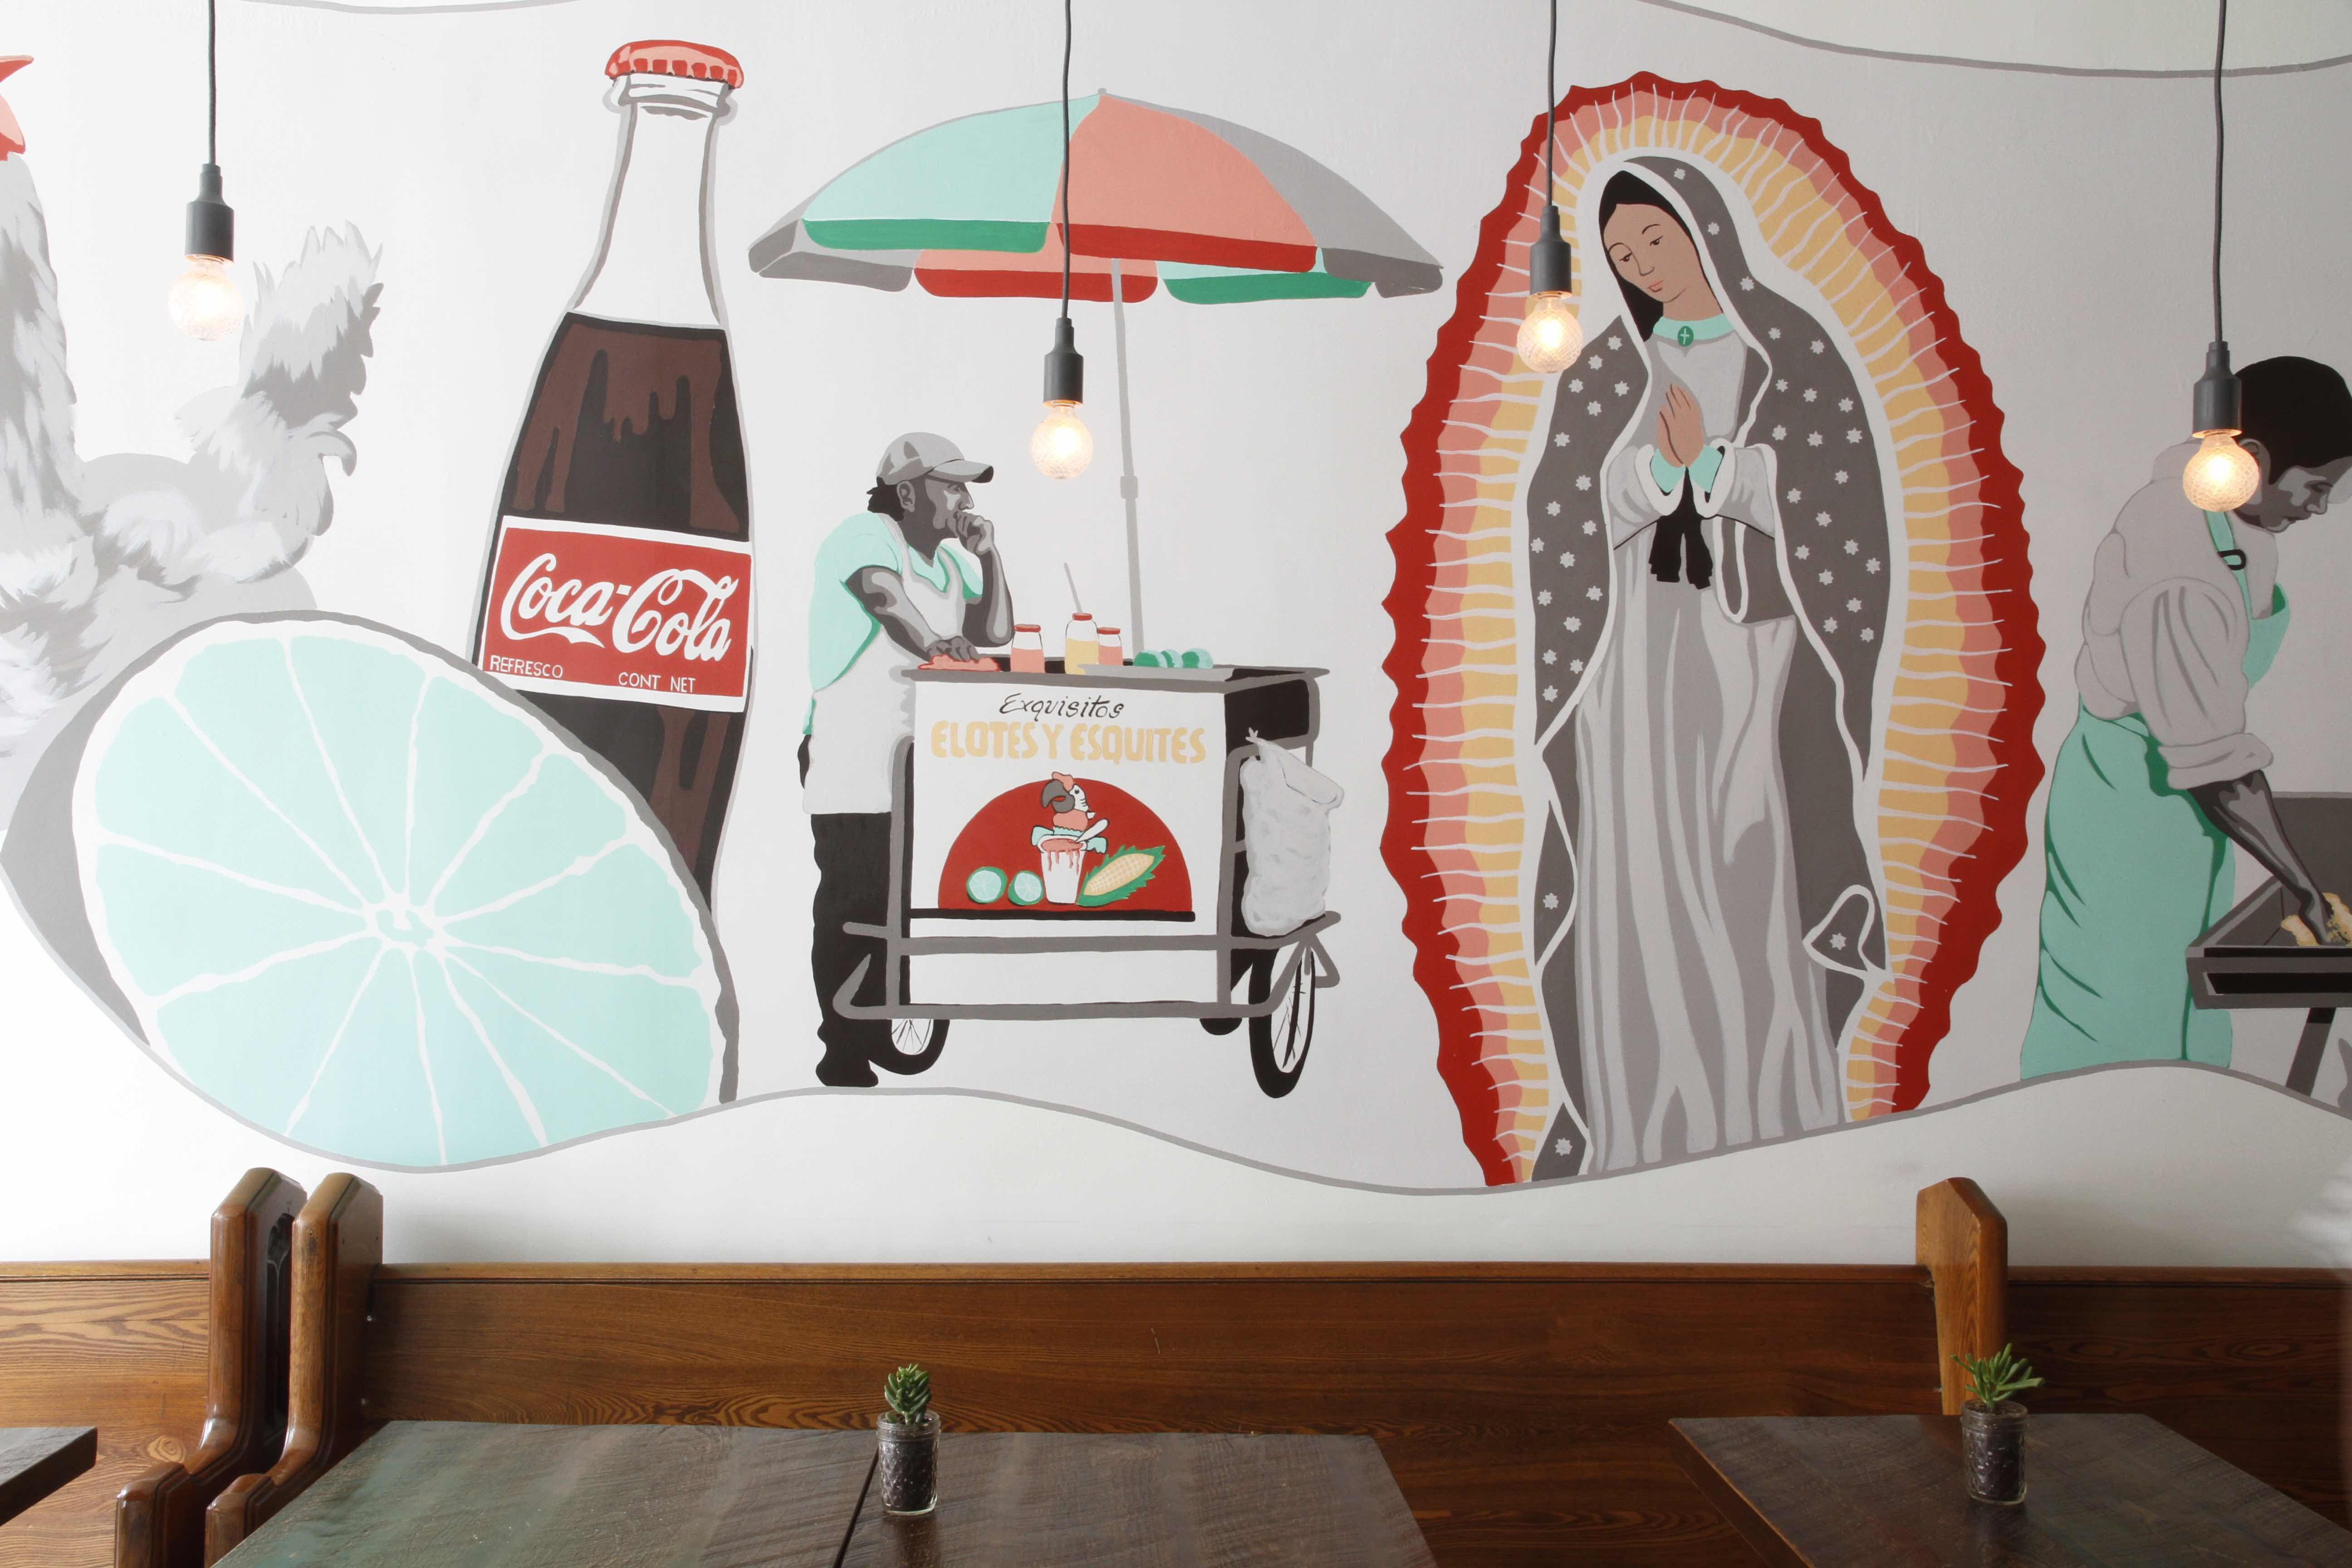 Whimsical murals depicting common culinary scenes in Mexico, in the country's signature red, green and white hues. They're by local artist Luke Pollard, inspired by Chef Enrique Olvera's book, Mexico from the Inside Out.